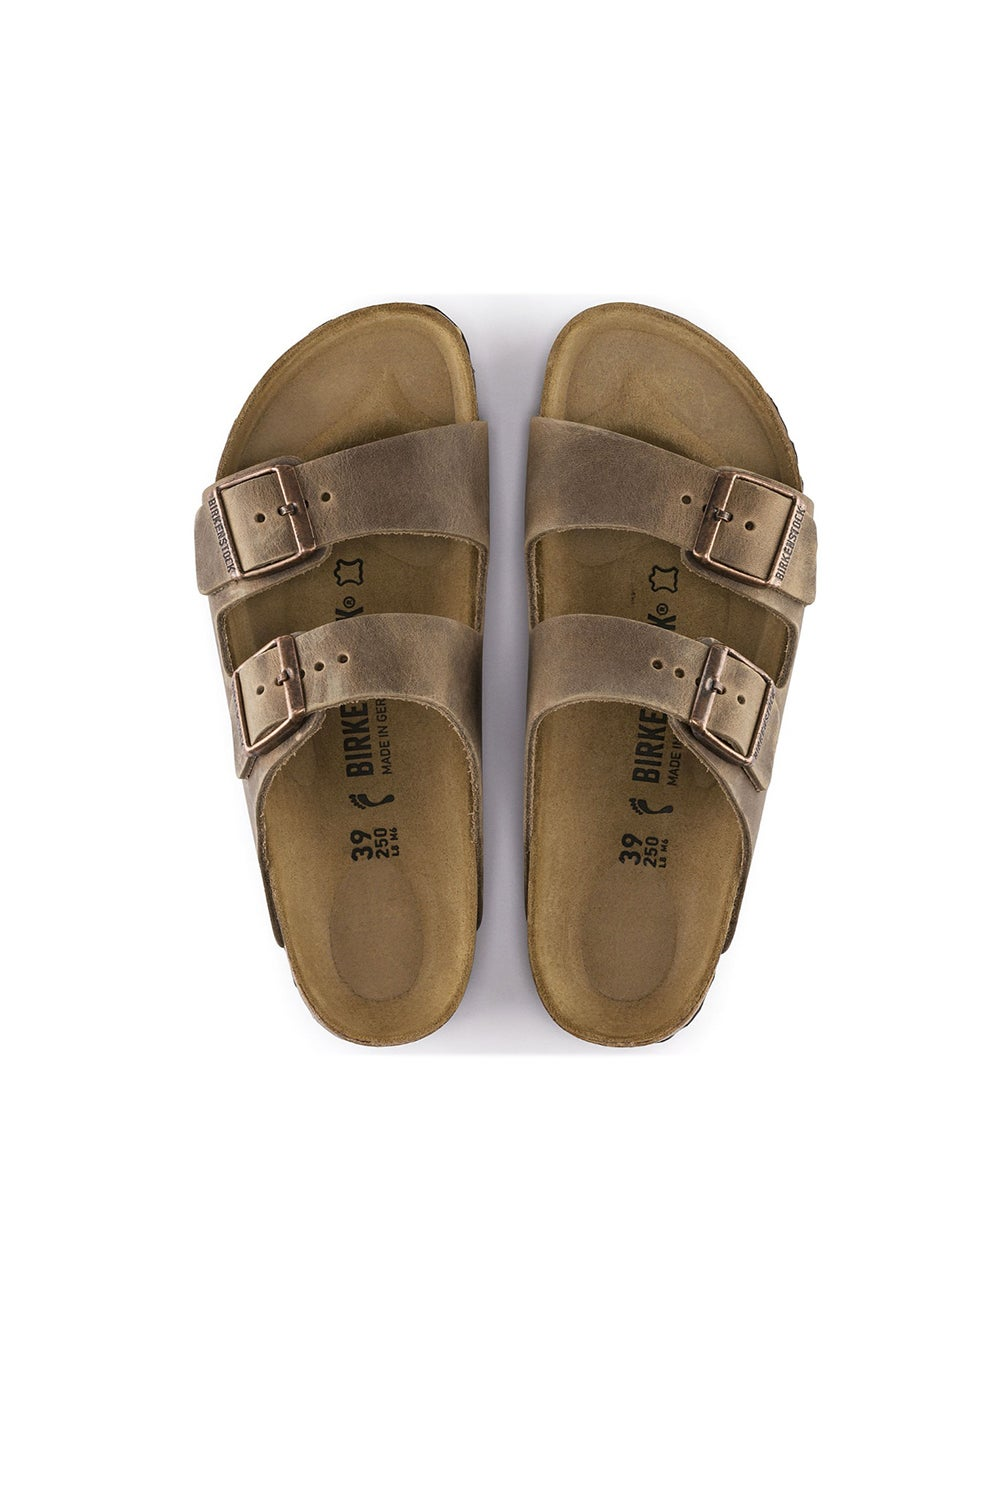 Birkenstock Arizona Oiled Leather Tabacco